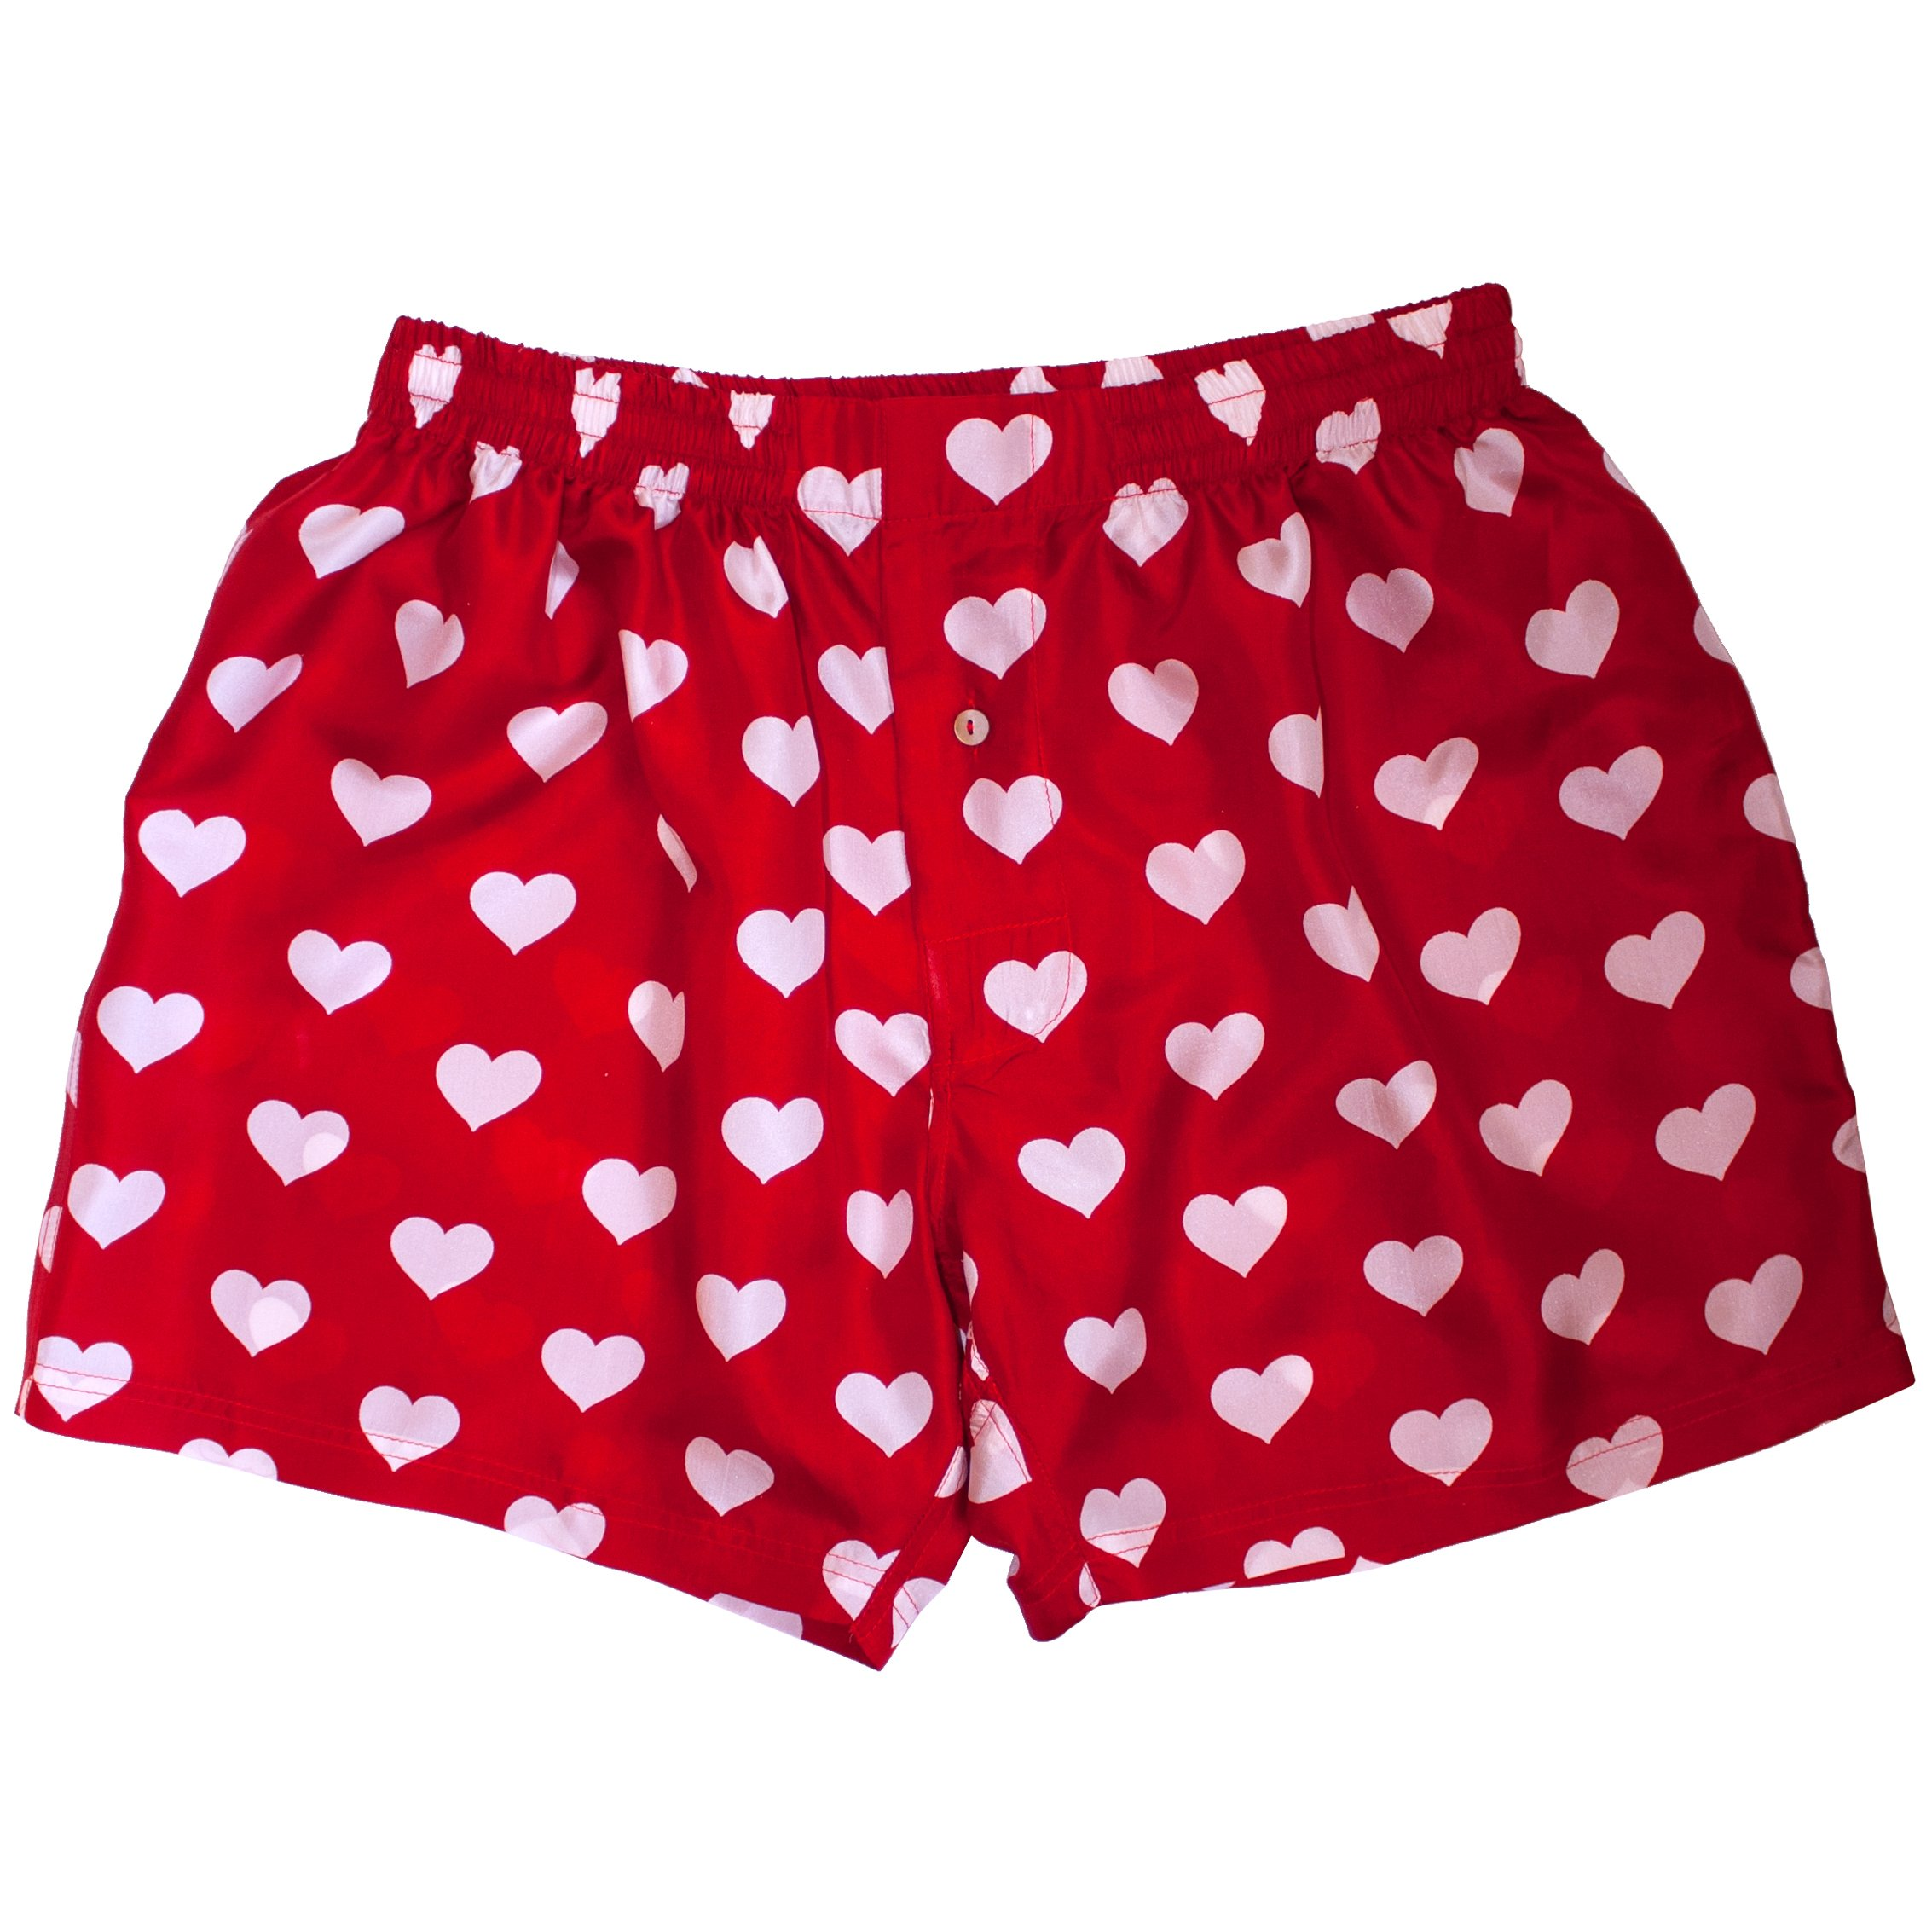 Royal Silk Red Silk Heart Boxers 2.0 by Love You Valentine Special - Men's XL (37-38'')